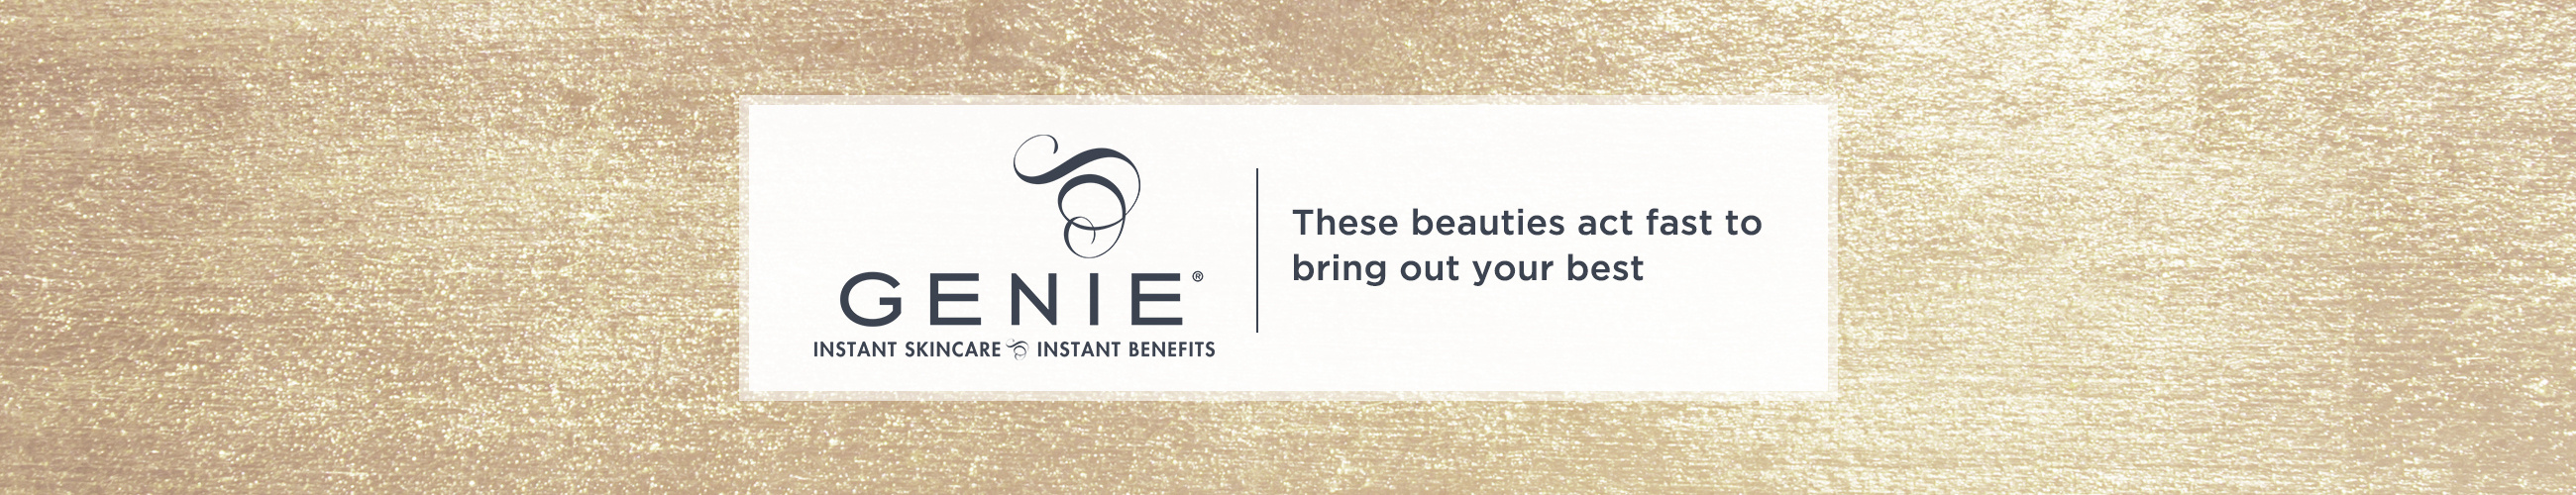 Genie - These beauties act fast to bring out your best